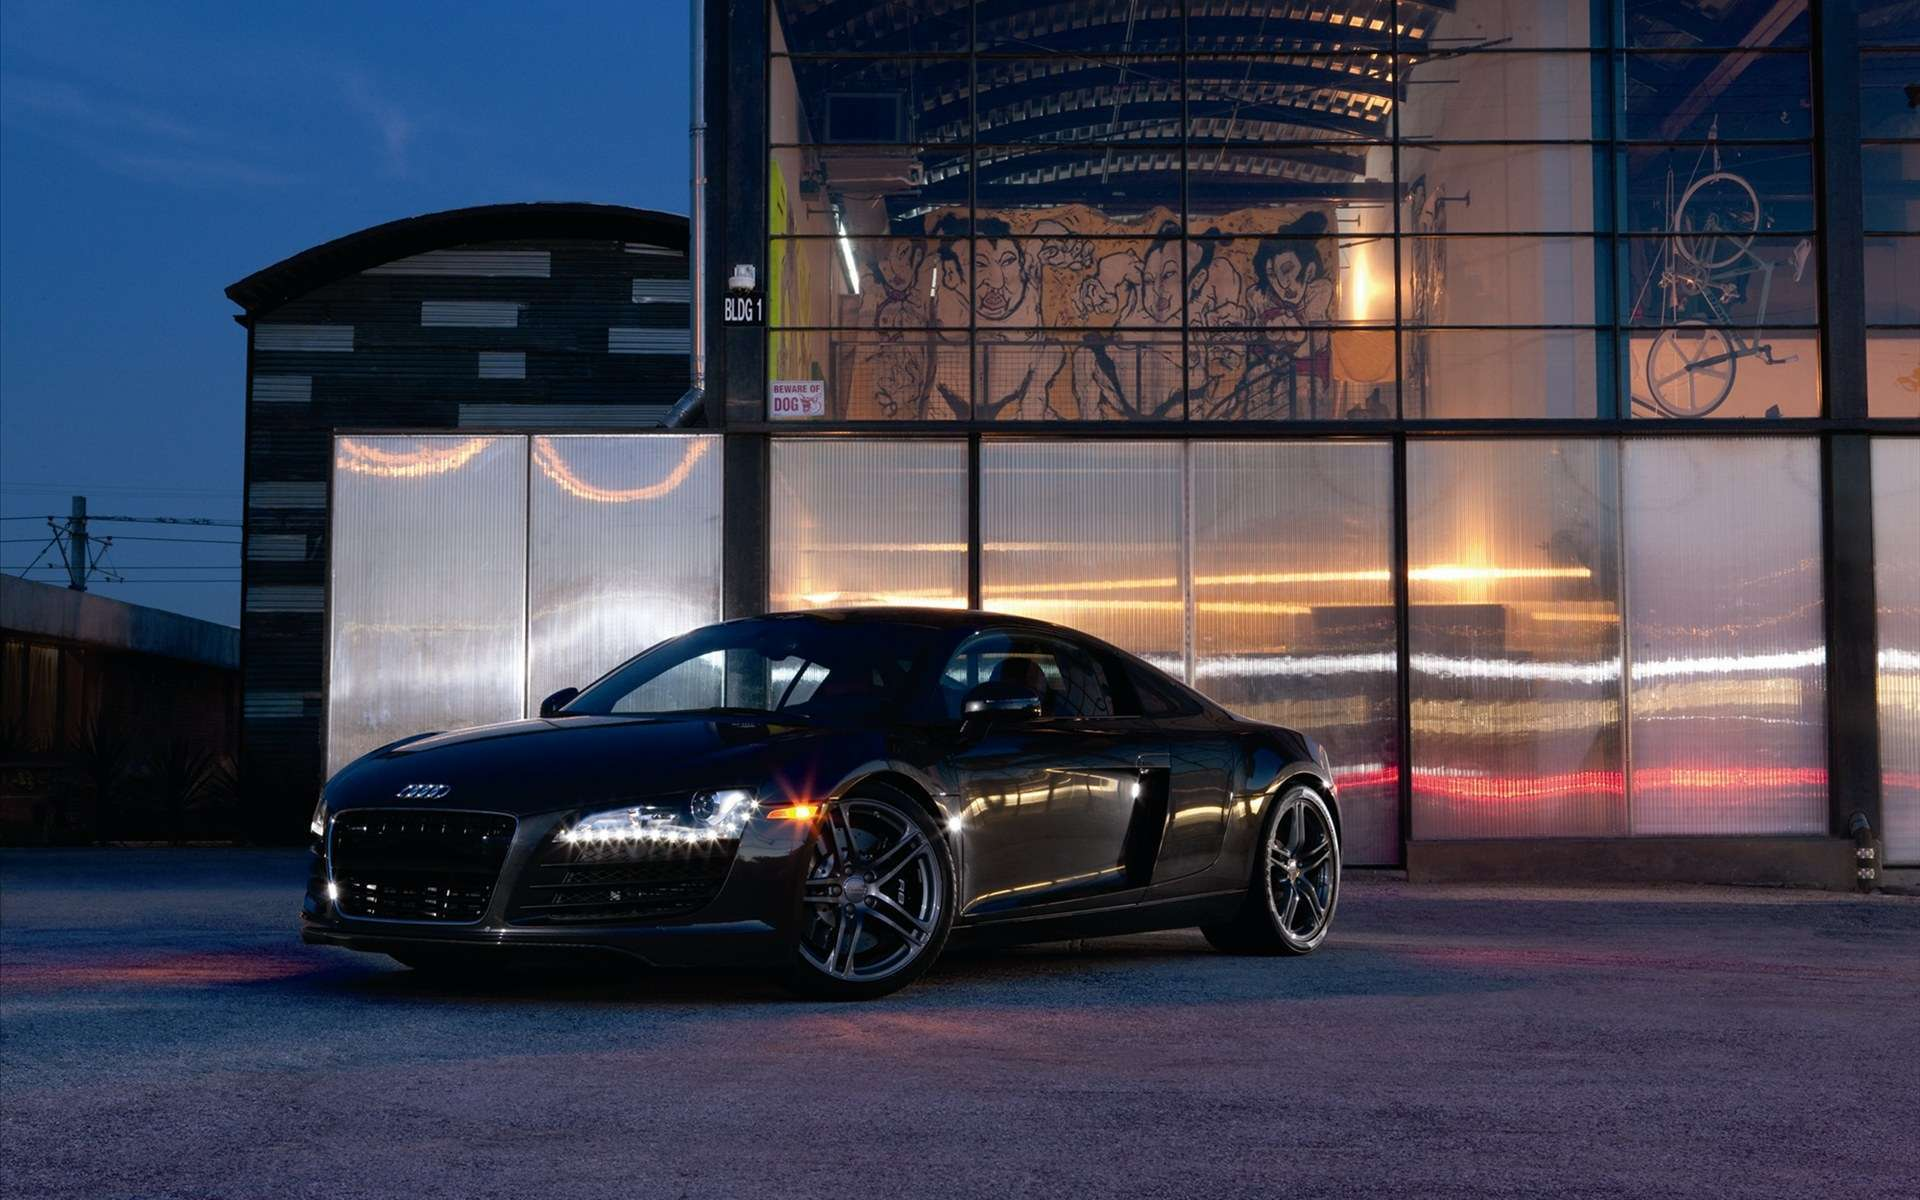 Amazing Wallpaper Night Car - night-audi-wallpaper-wallpapers  Pictures.jpg